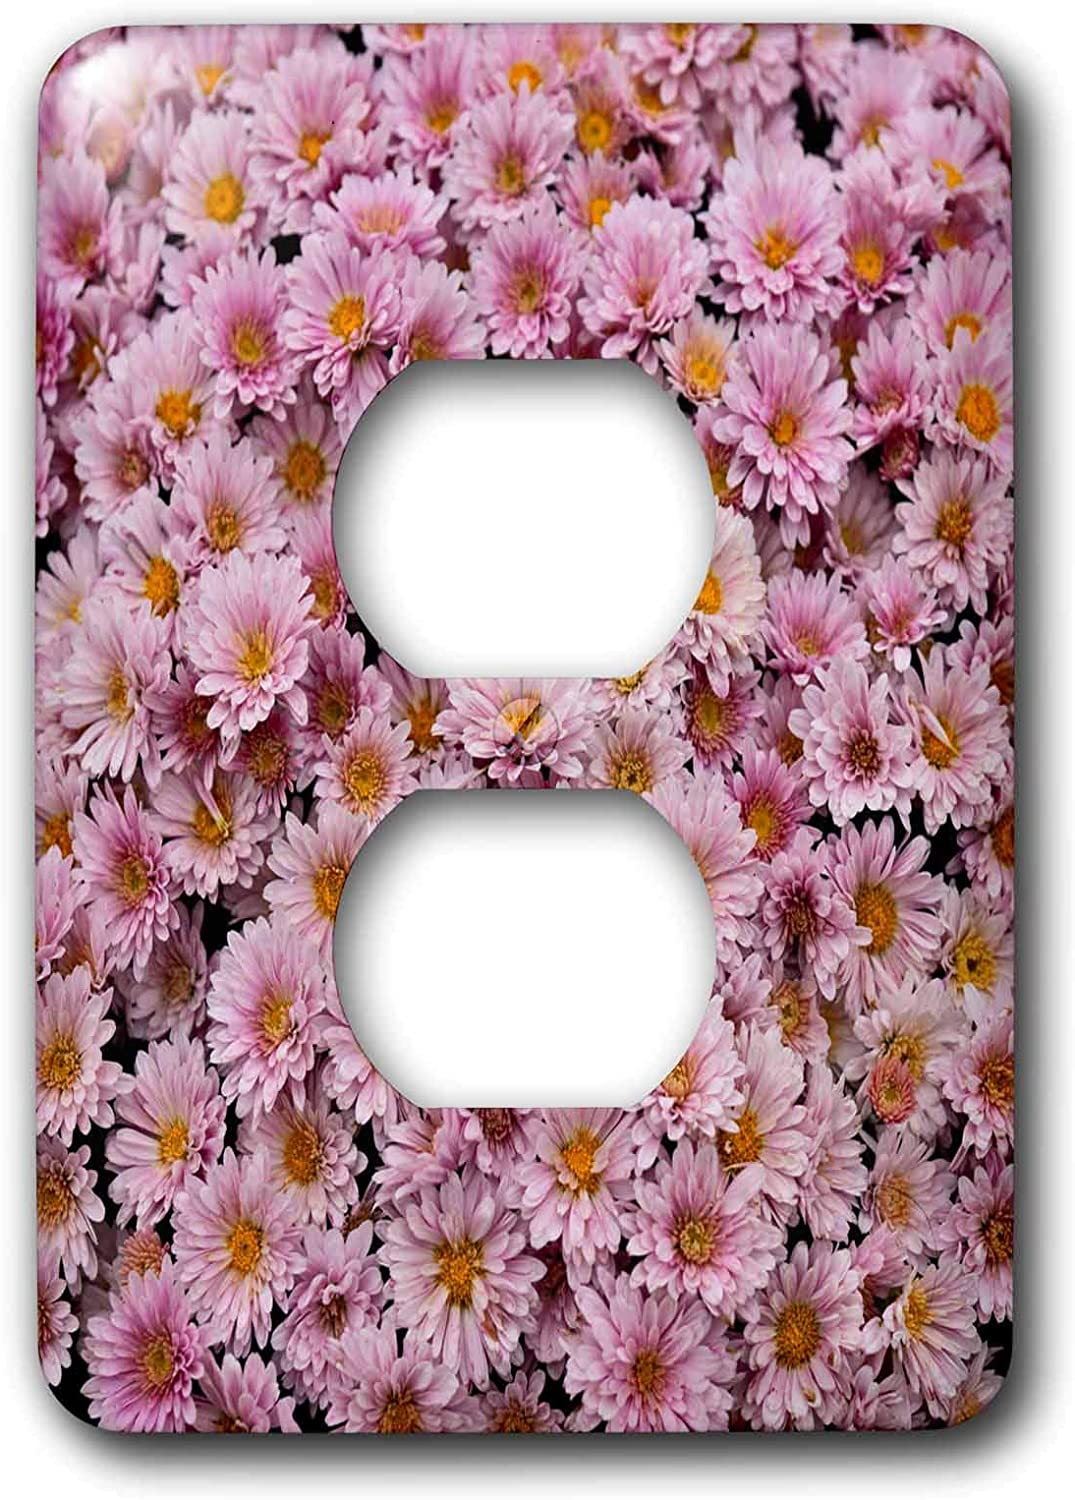 3dRose Pink Marguerite, Chrysanthemum segetum flowers. Natural. - Light Switch Covers (lsp_327901_6)